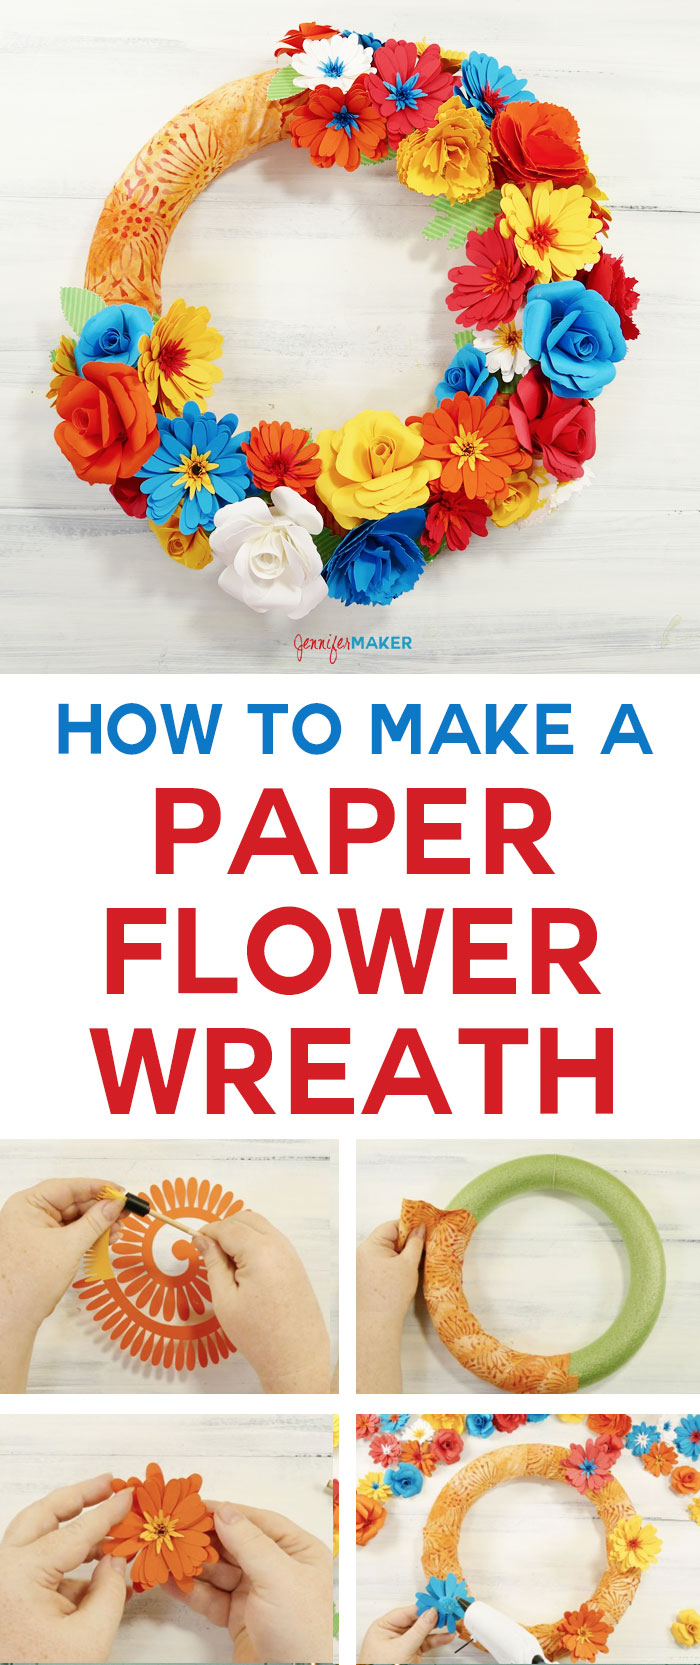 Paper Flower Wreath | Cricut Explore | Handmade Paper Flowers | Easy Home Decor | DIY